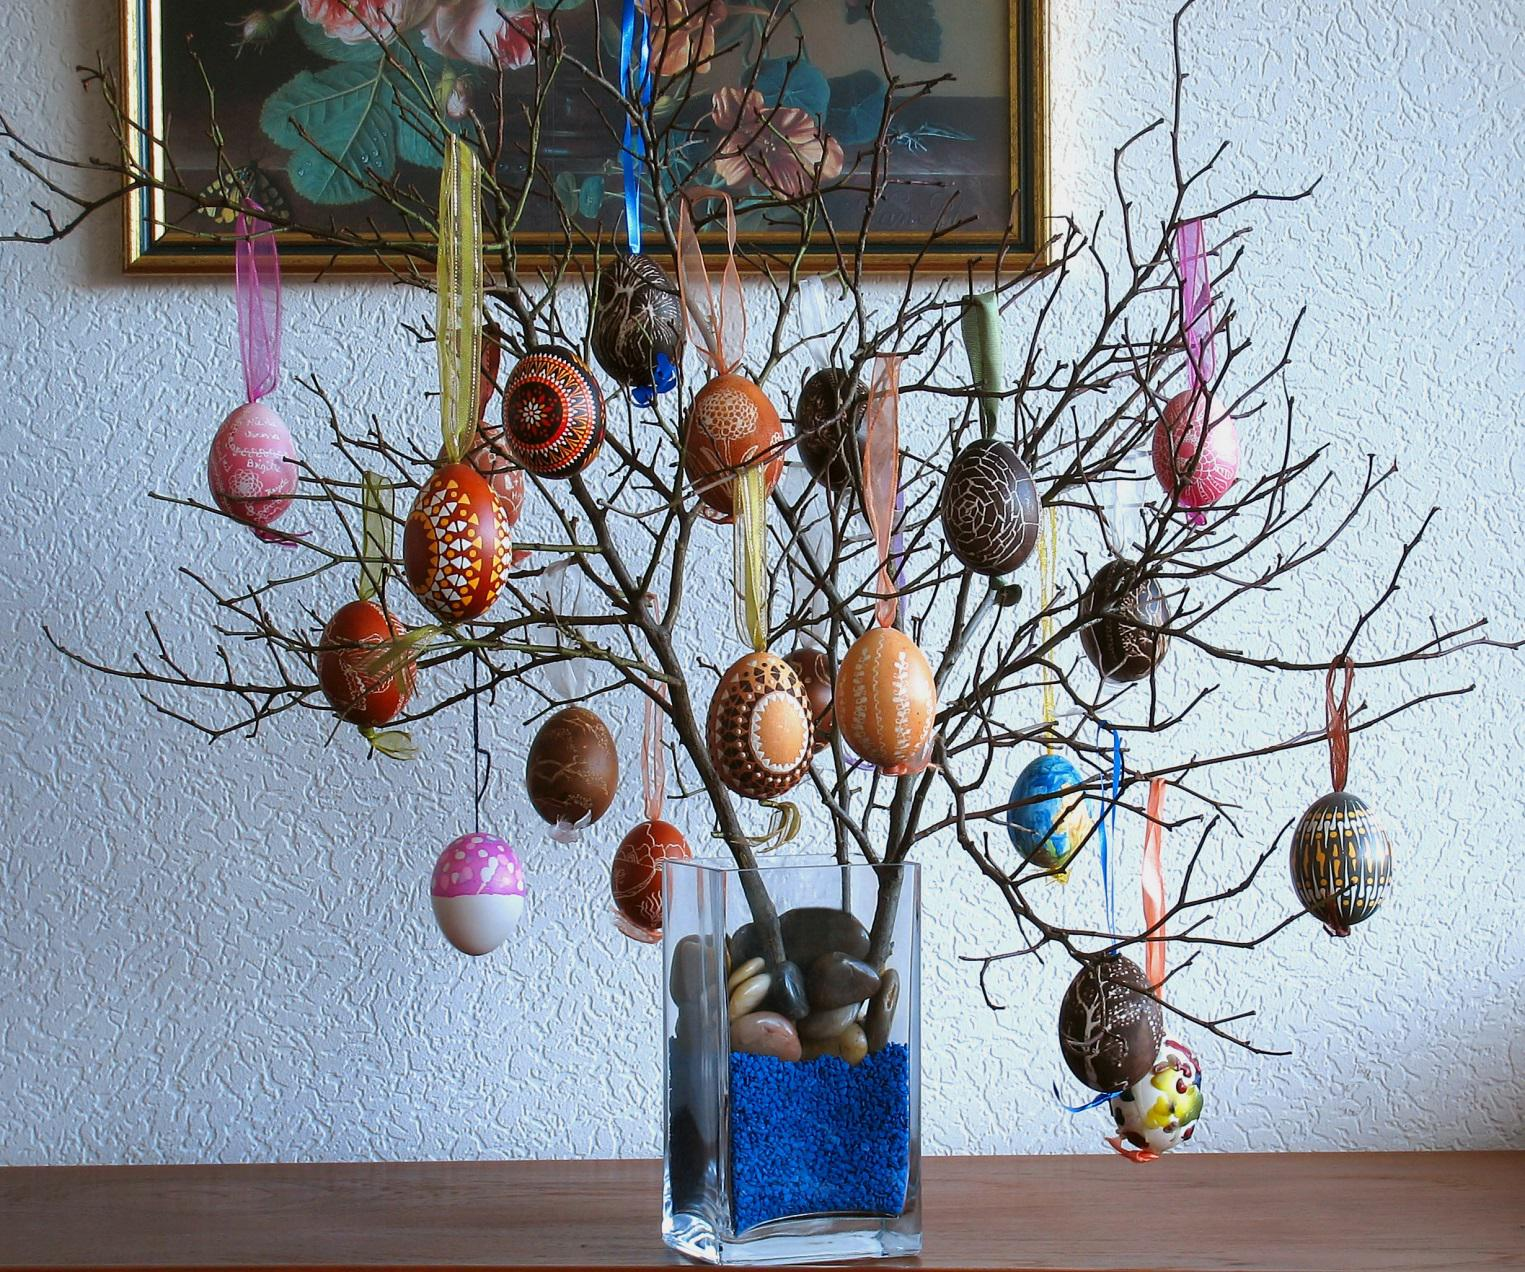 Christian decorations associated with Easter